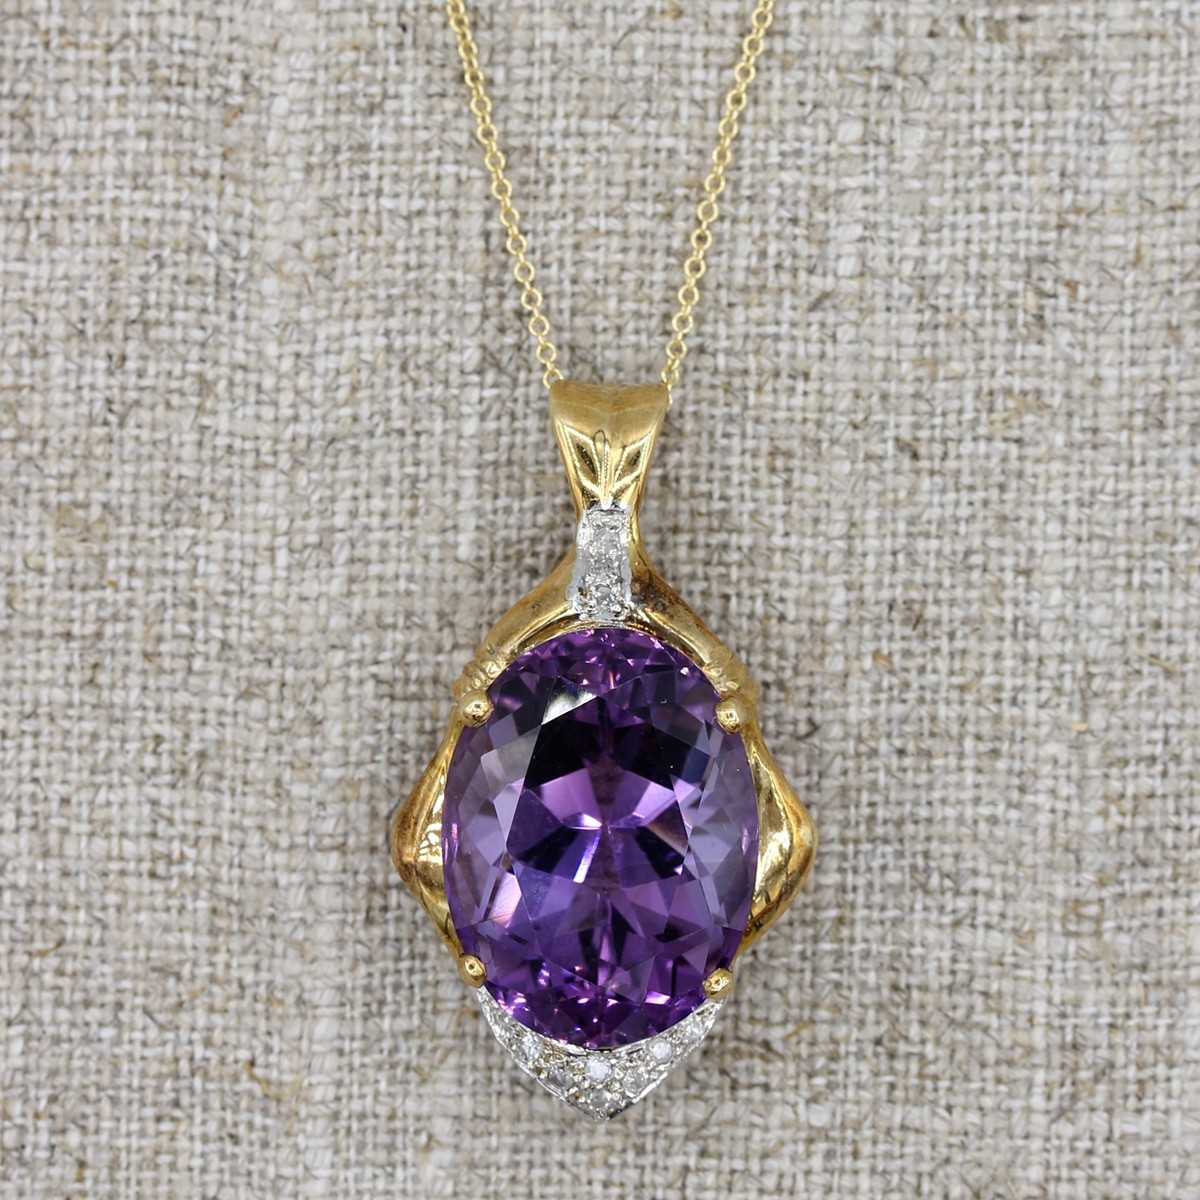 VINTAGE 14K YELLOW GOLD NECKLACE WITH OVAL SHAPE AMETHYST PENDANT